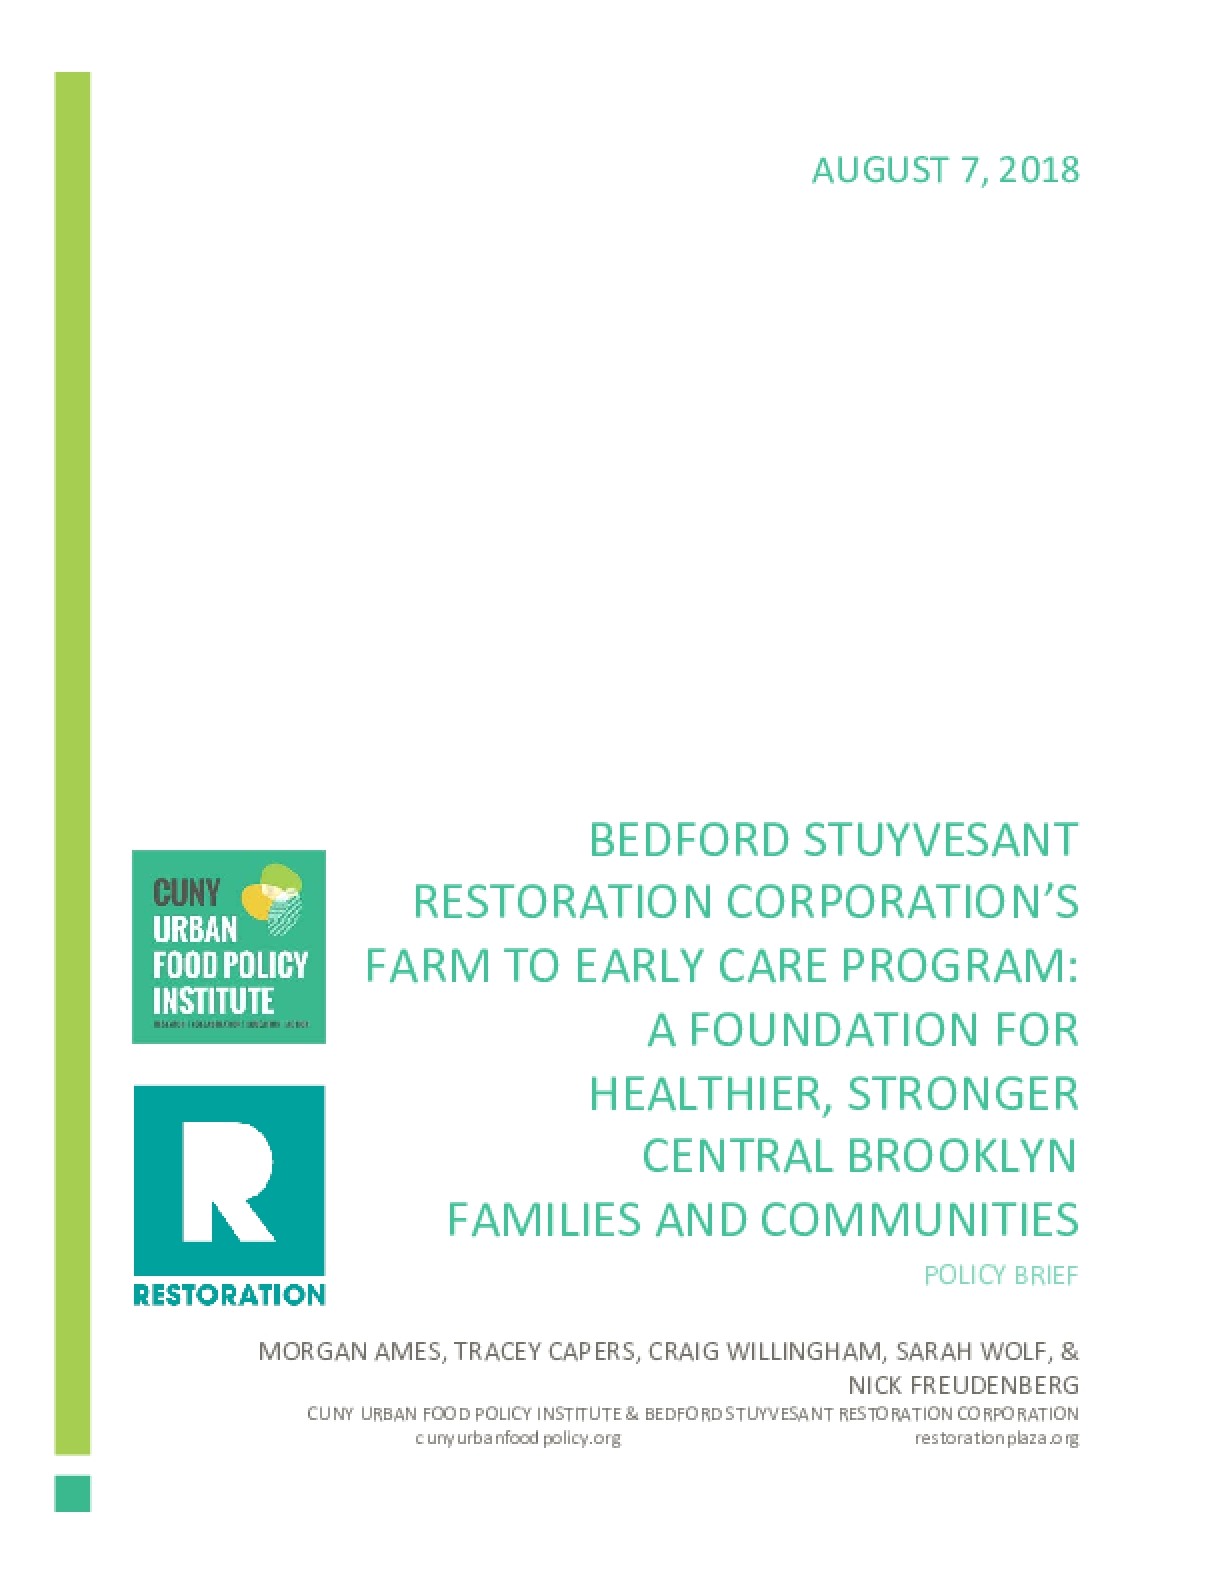 Bedford Stuyvesant Restoration Corporation's Farm to Early Care Program:  A Foundation for Healthier, Stronger Central Brooklyn Families and Communities